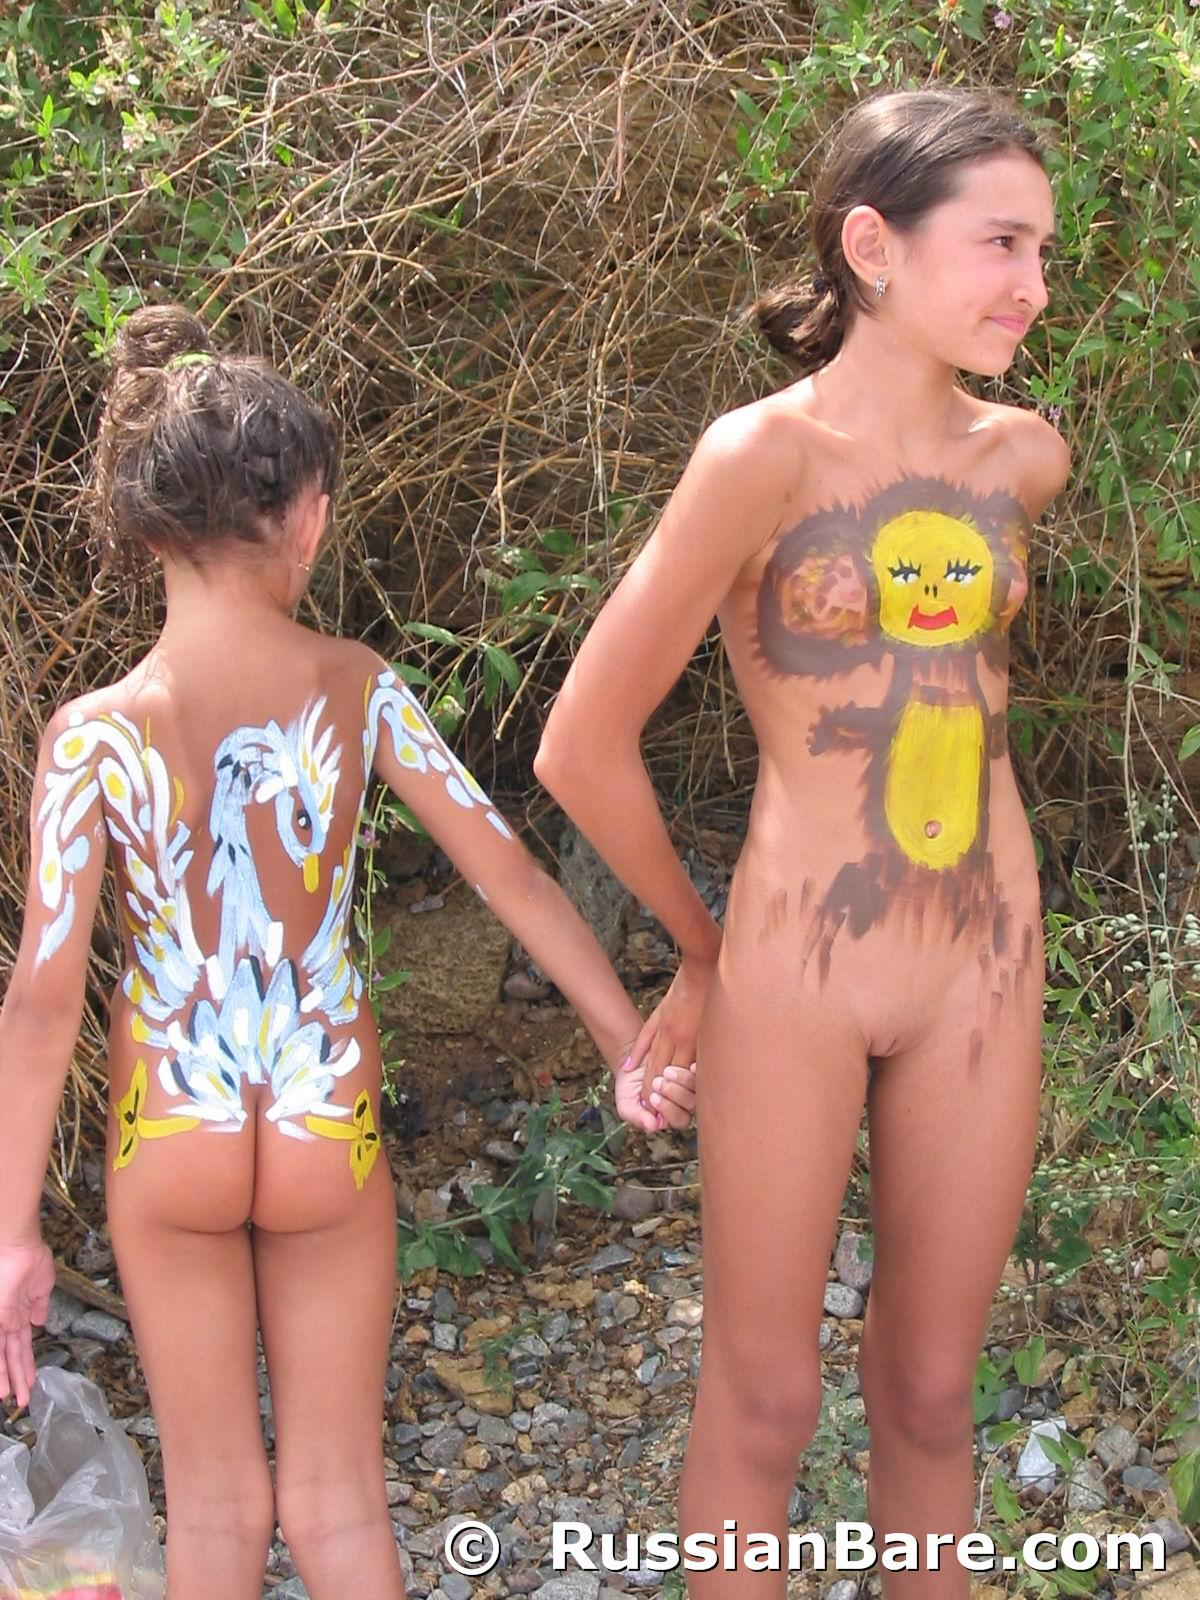 nudist nudism paint body pure Family